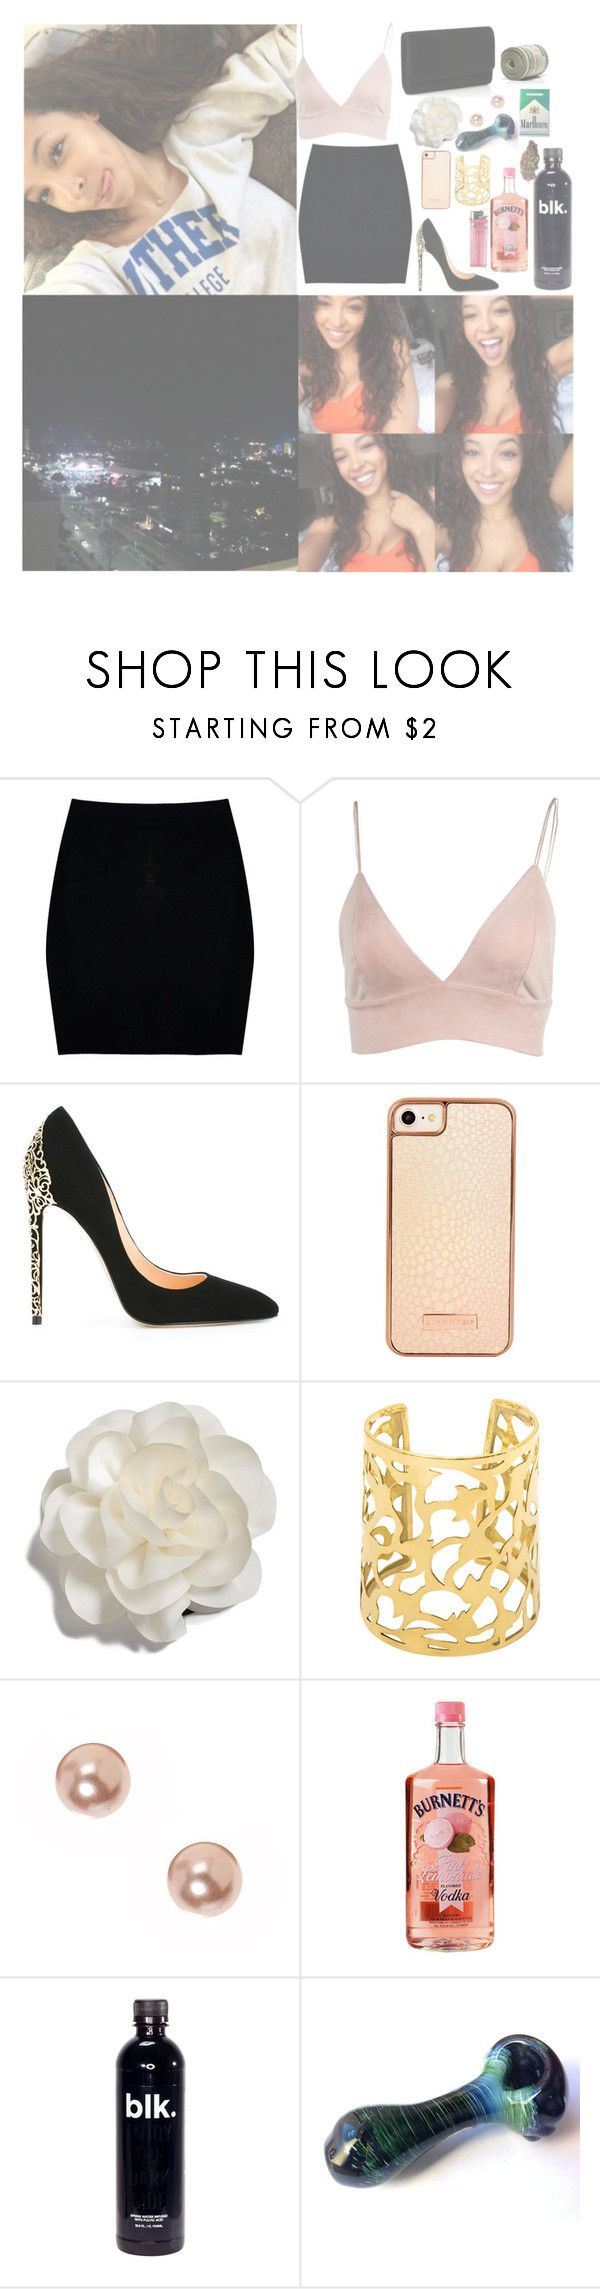 """Alicia"" by musickilledme ❤ liked on Polyvore featuring Boohoo, Cerasella Milano, Skinnydip, Cara and claire's"